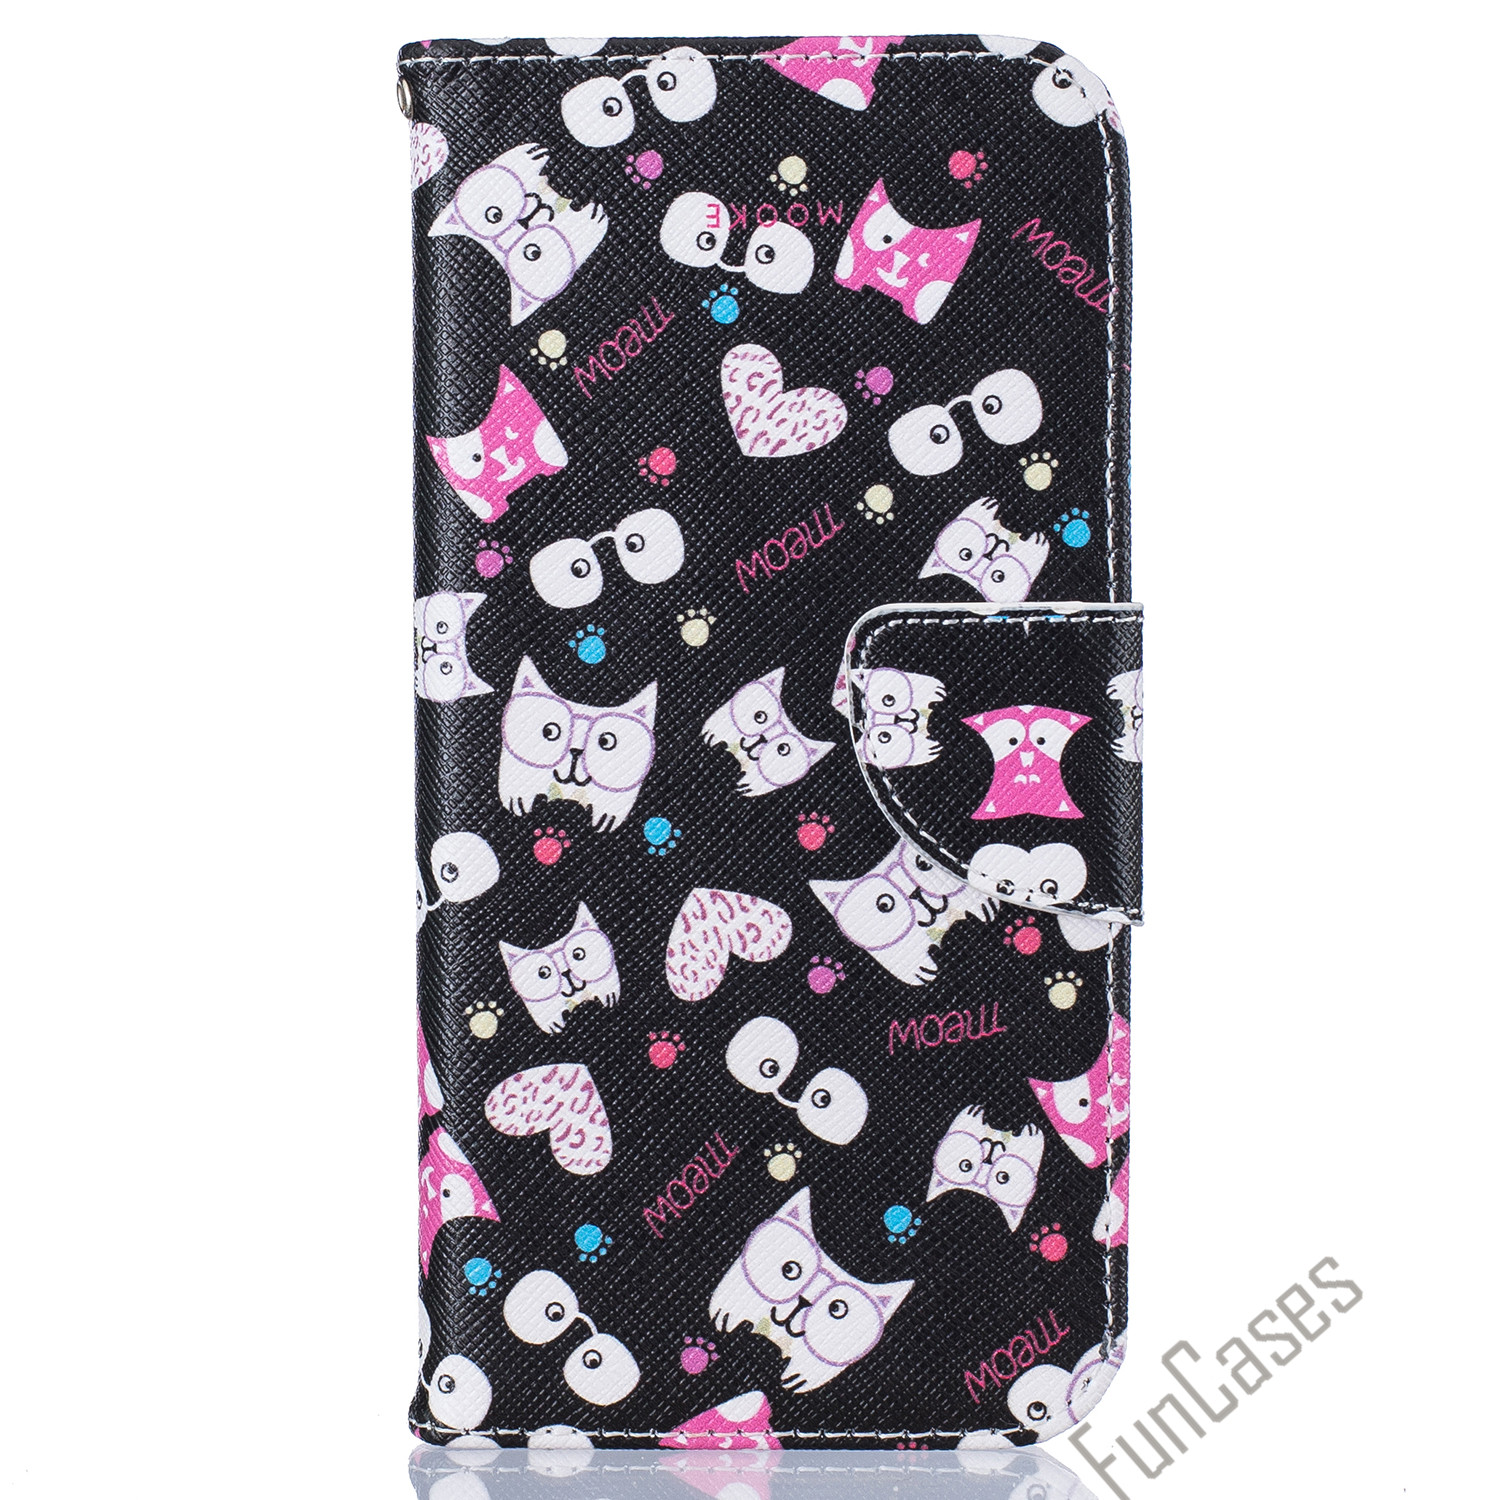 New Art Print Fashion For Samsung Galaxy S7 edge Cases Wallet Flip Cover PU Leather Card Slot Photo Frame Cover Bag Stand Capa